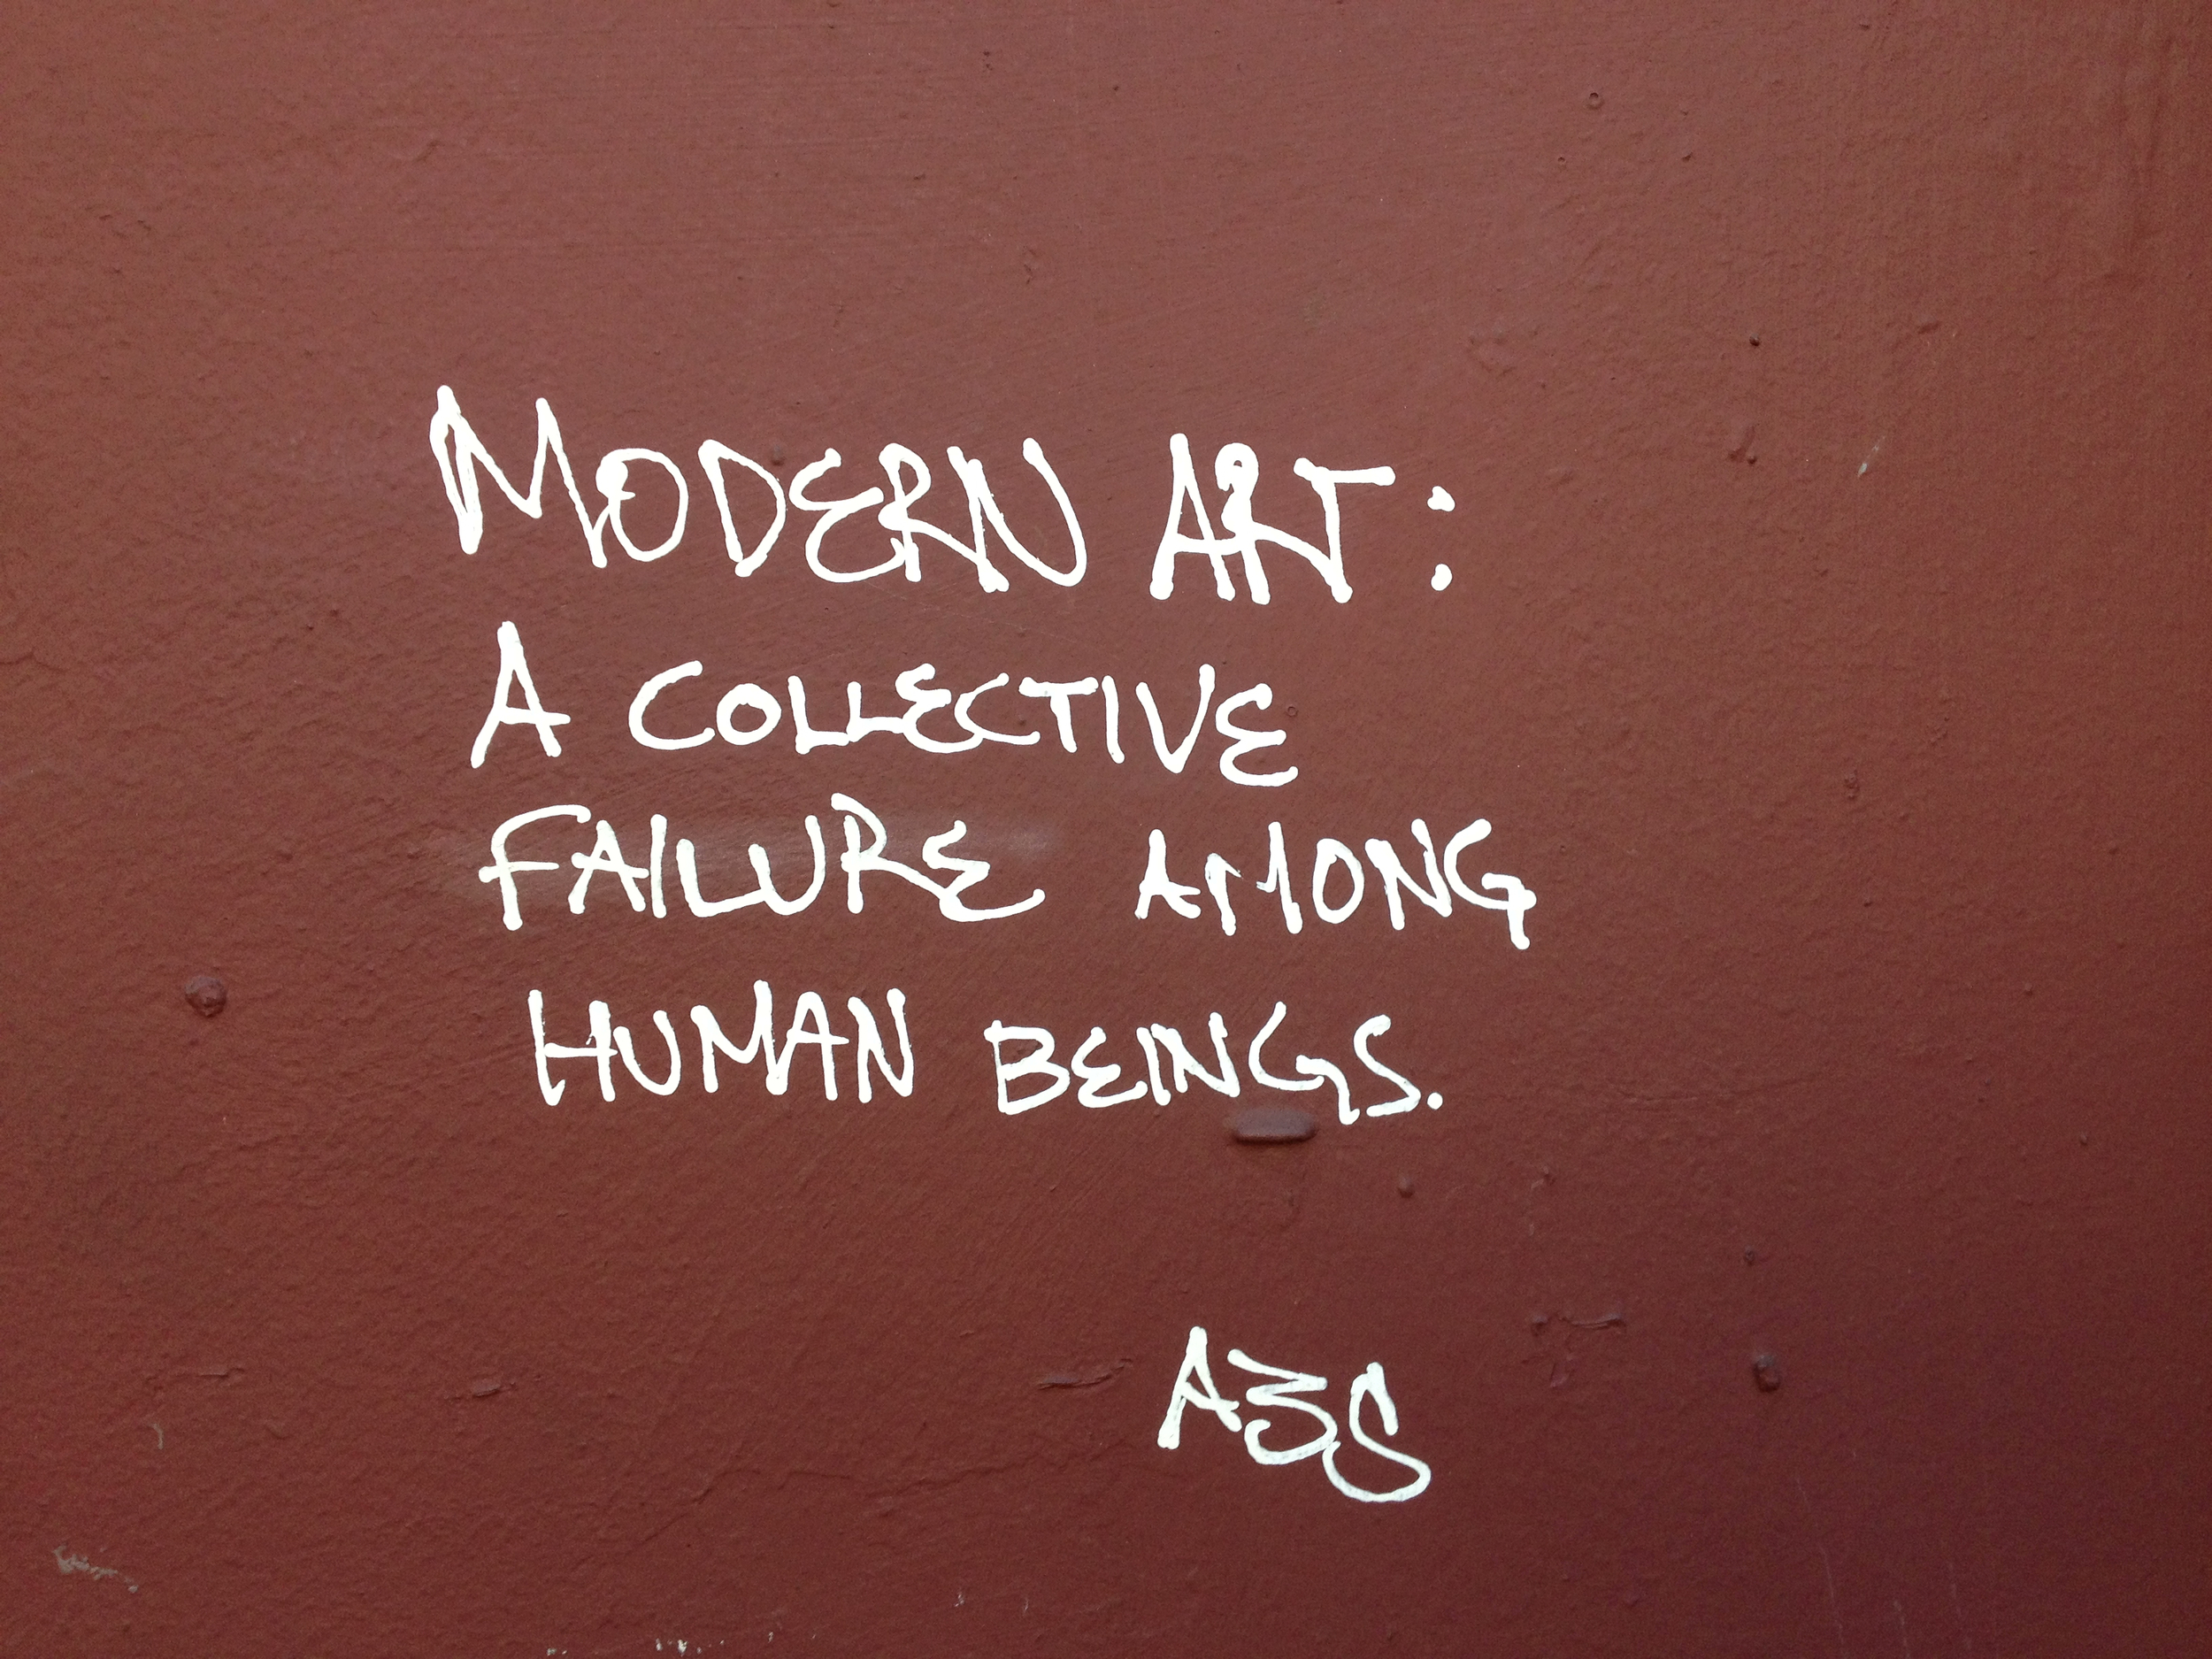 """I wonder if the wit behind this comment regards graffiti writing as """"modern art."""""""